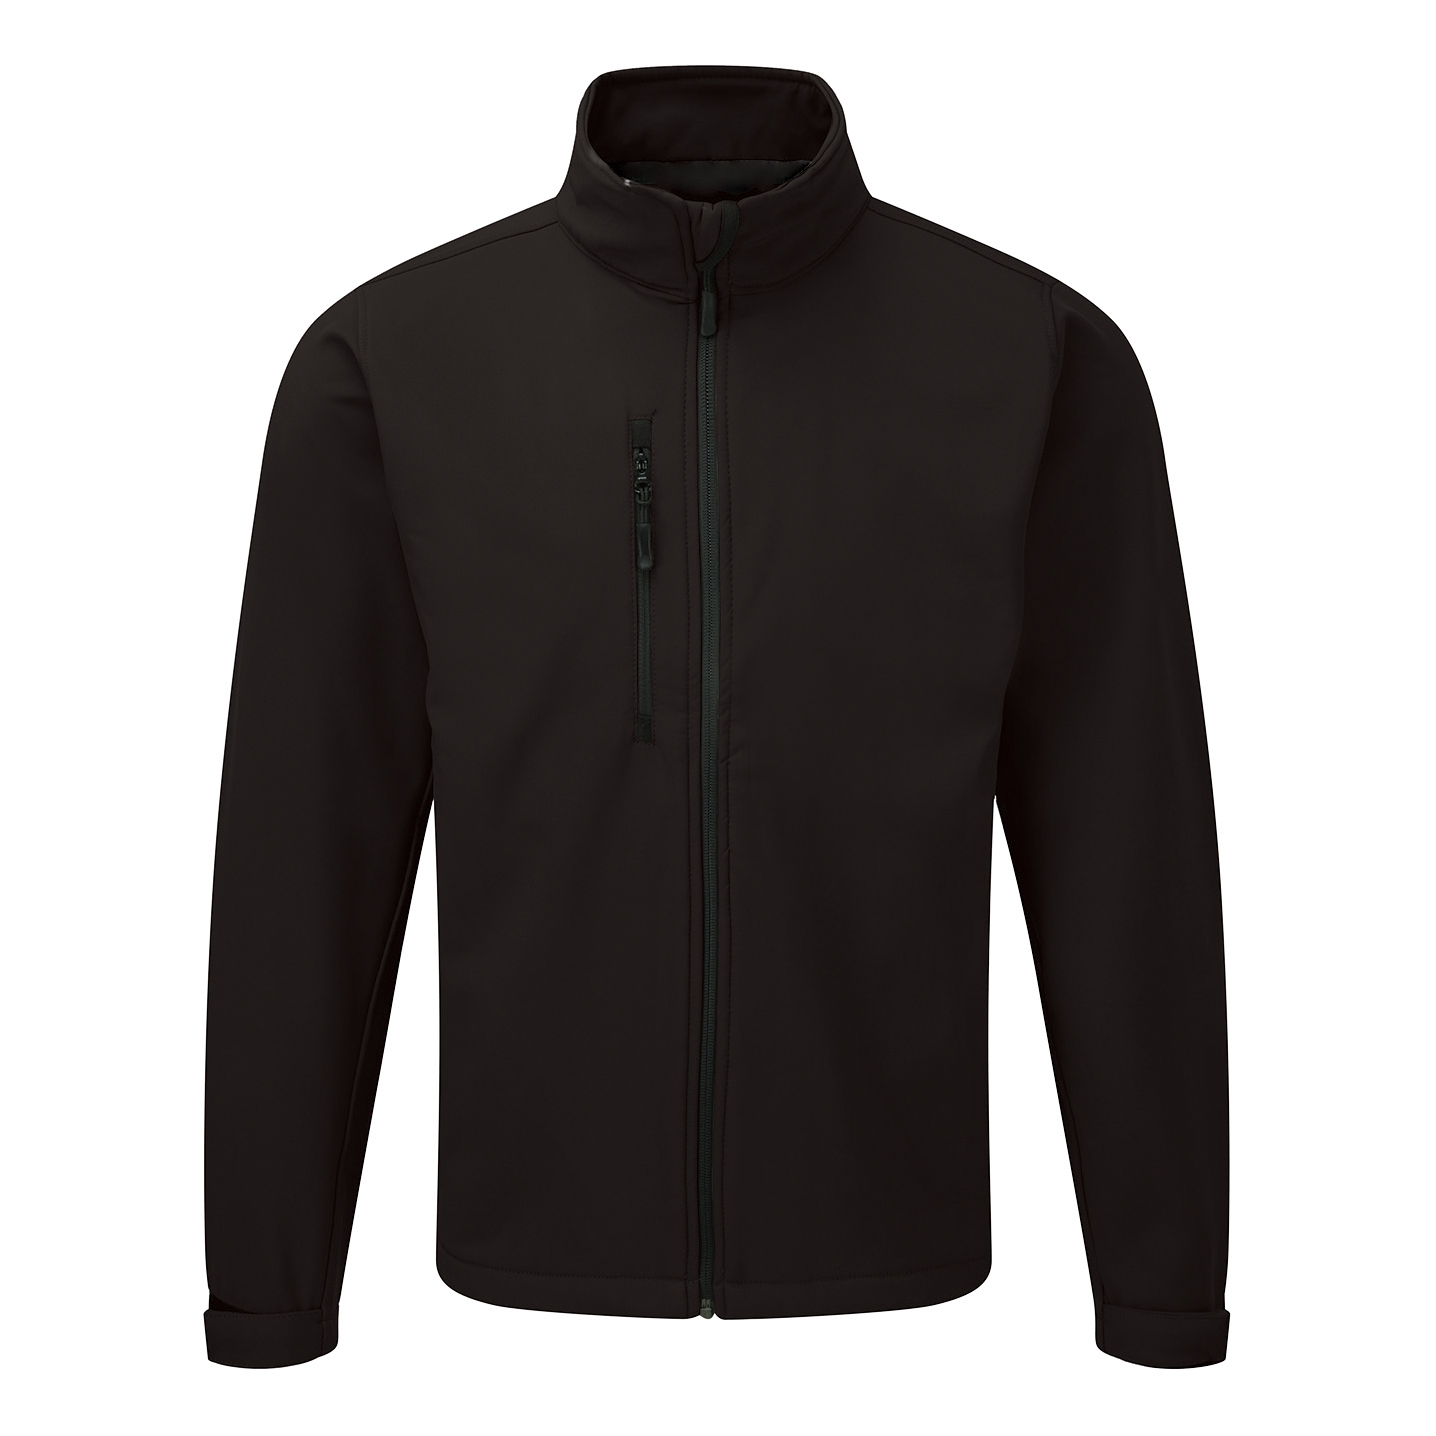 Jacket Soft Shell Water Resistant Breathable 320gsm Medium Black